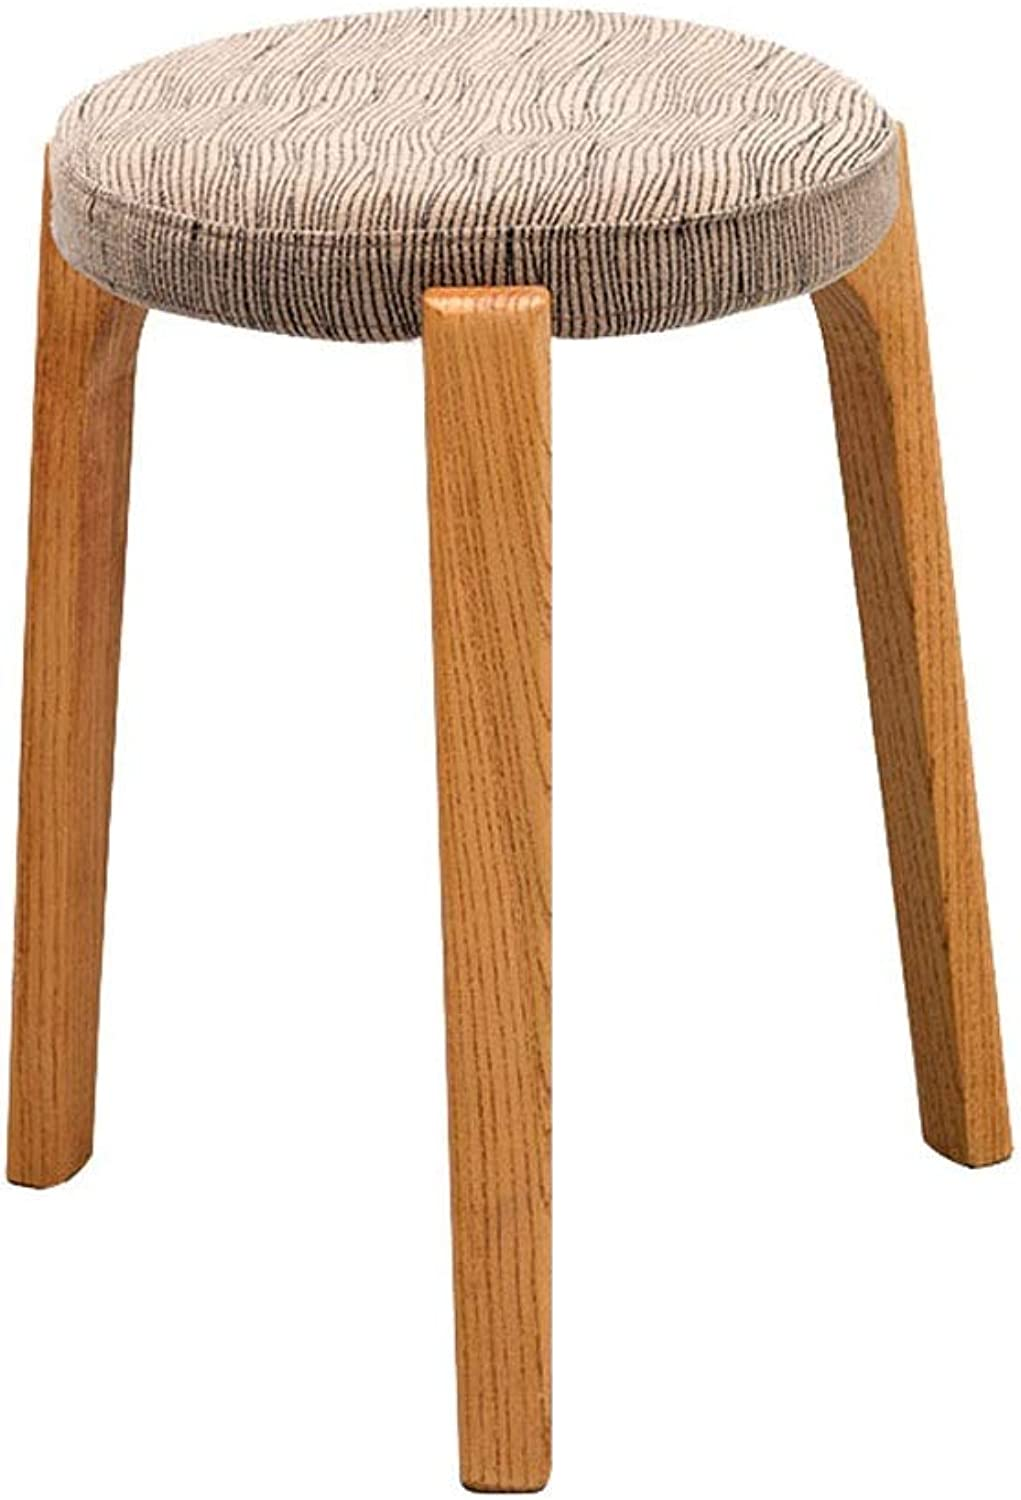 Footstools Solid Wood Stool Chair Fabric Round Three Leg Log Support Living Room Dining Stool Seat Washable Stool Cover (color   E)